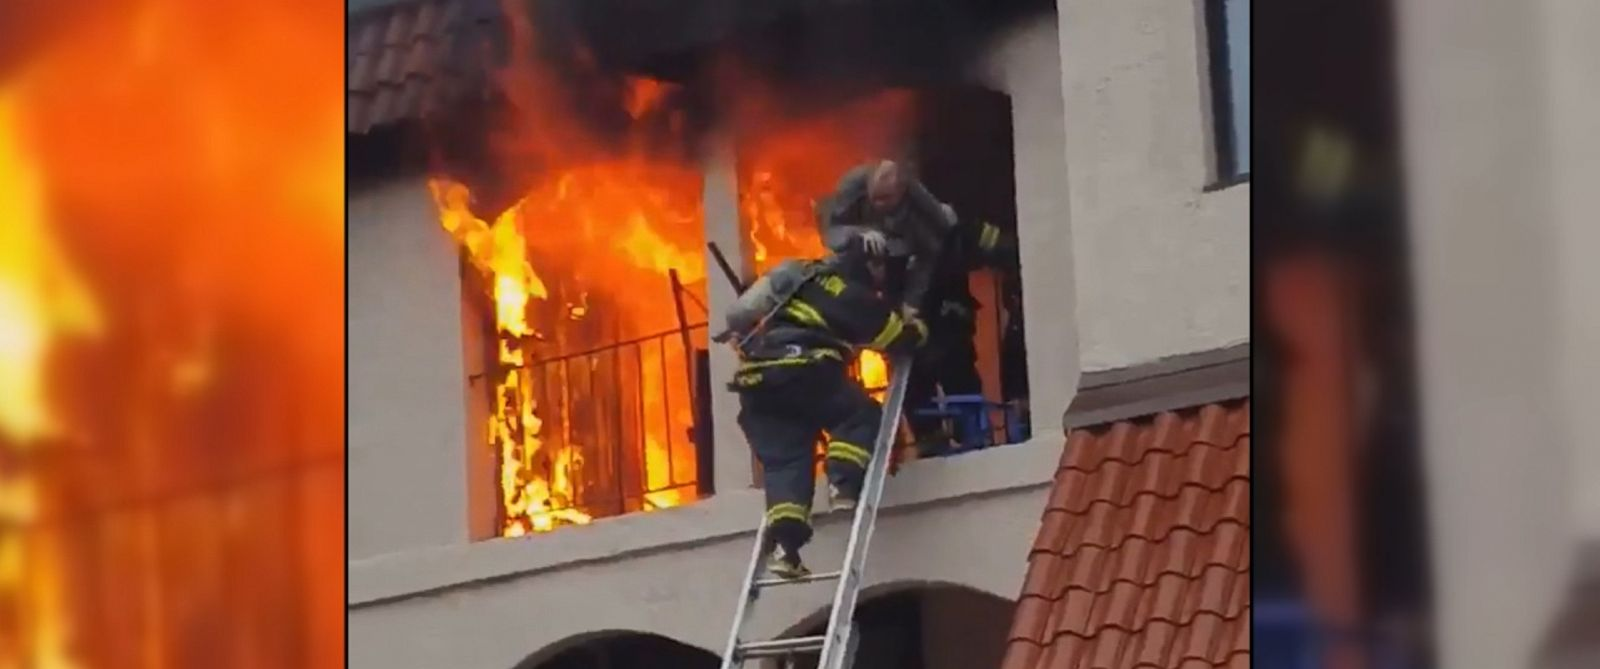 VIDEO: Dramatic video shows firefighters rescuing a man from a burning apartment in Brockton, Massachusetts. The man is being treated for burns at a local hospital.